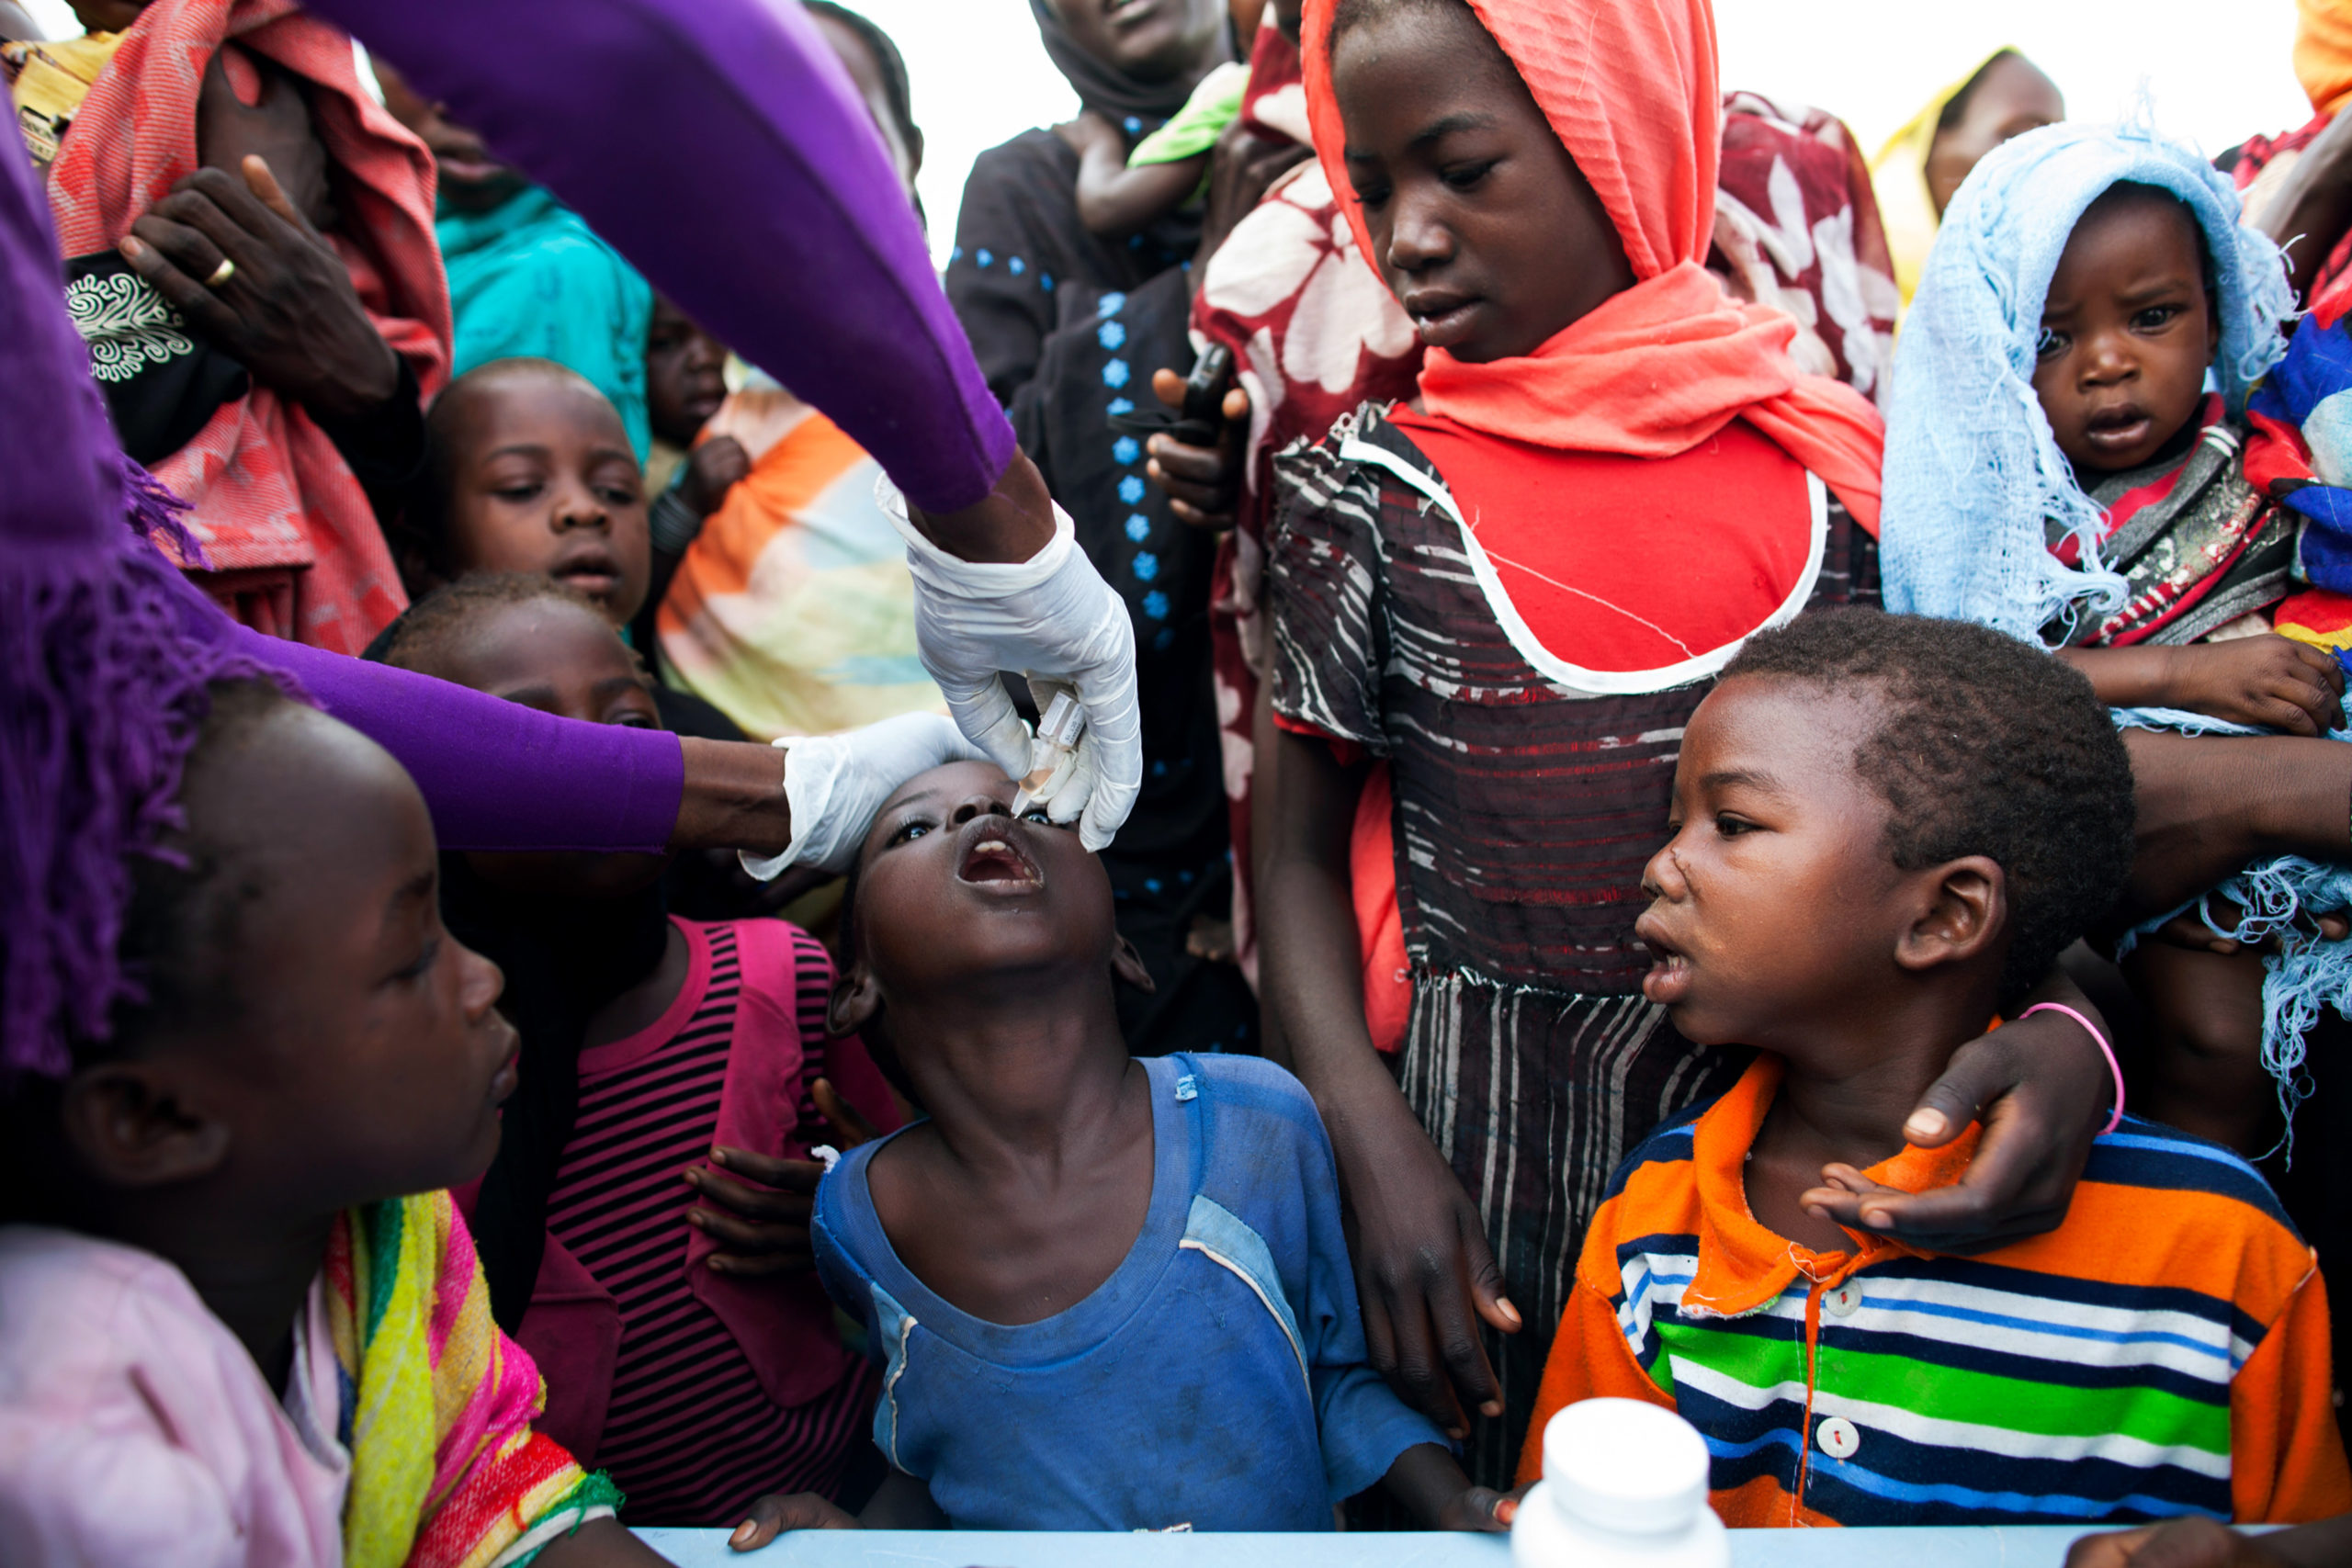 Africa on the brink of polio eradication